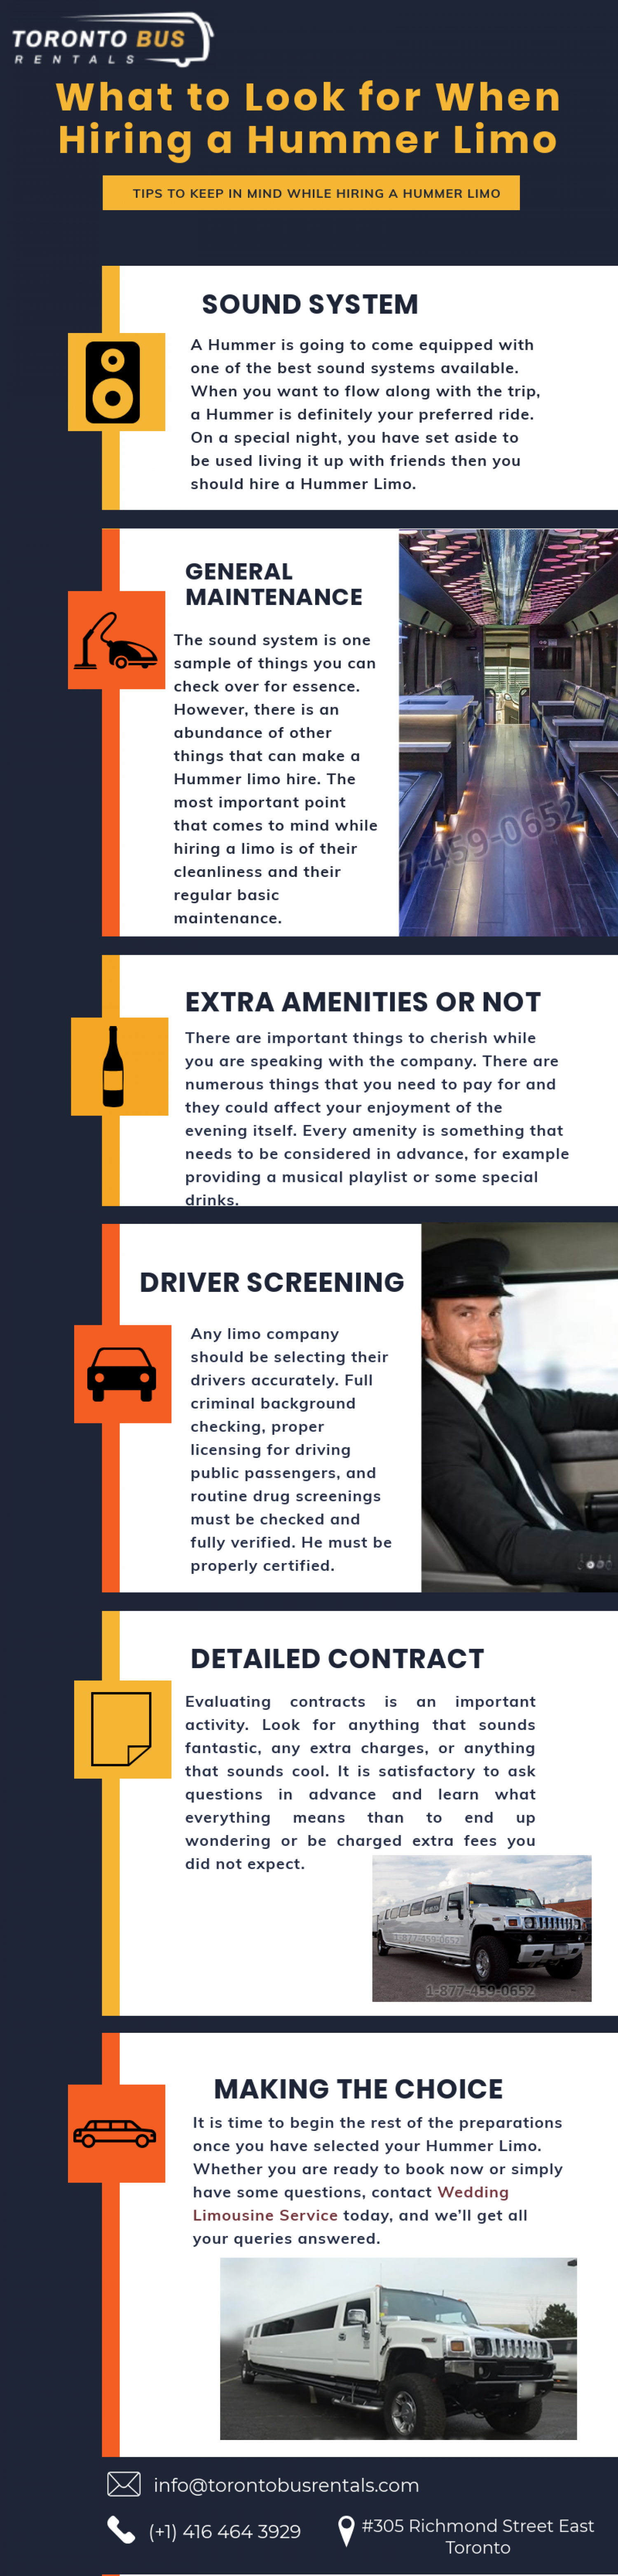 Tips to Keep in mind while Hiring a Hummer Limo Infographic